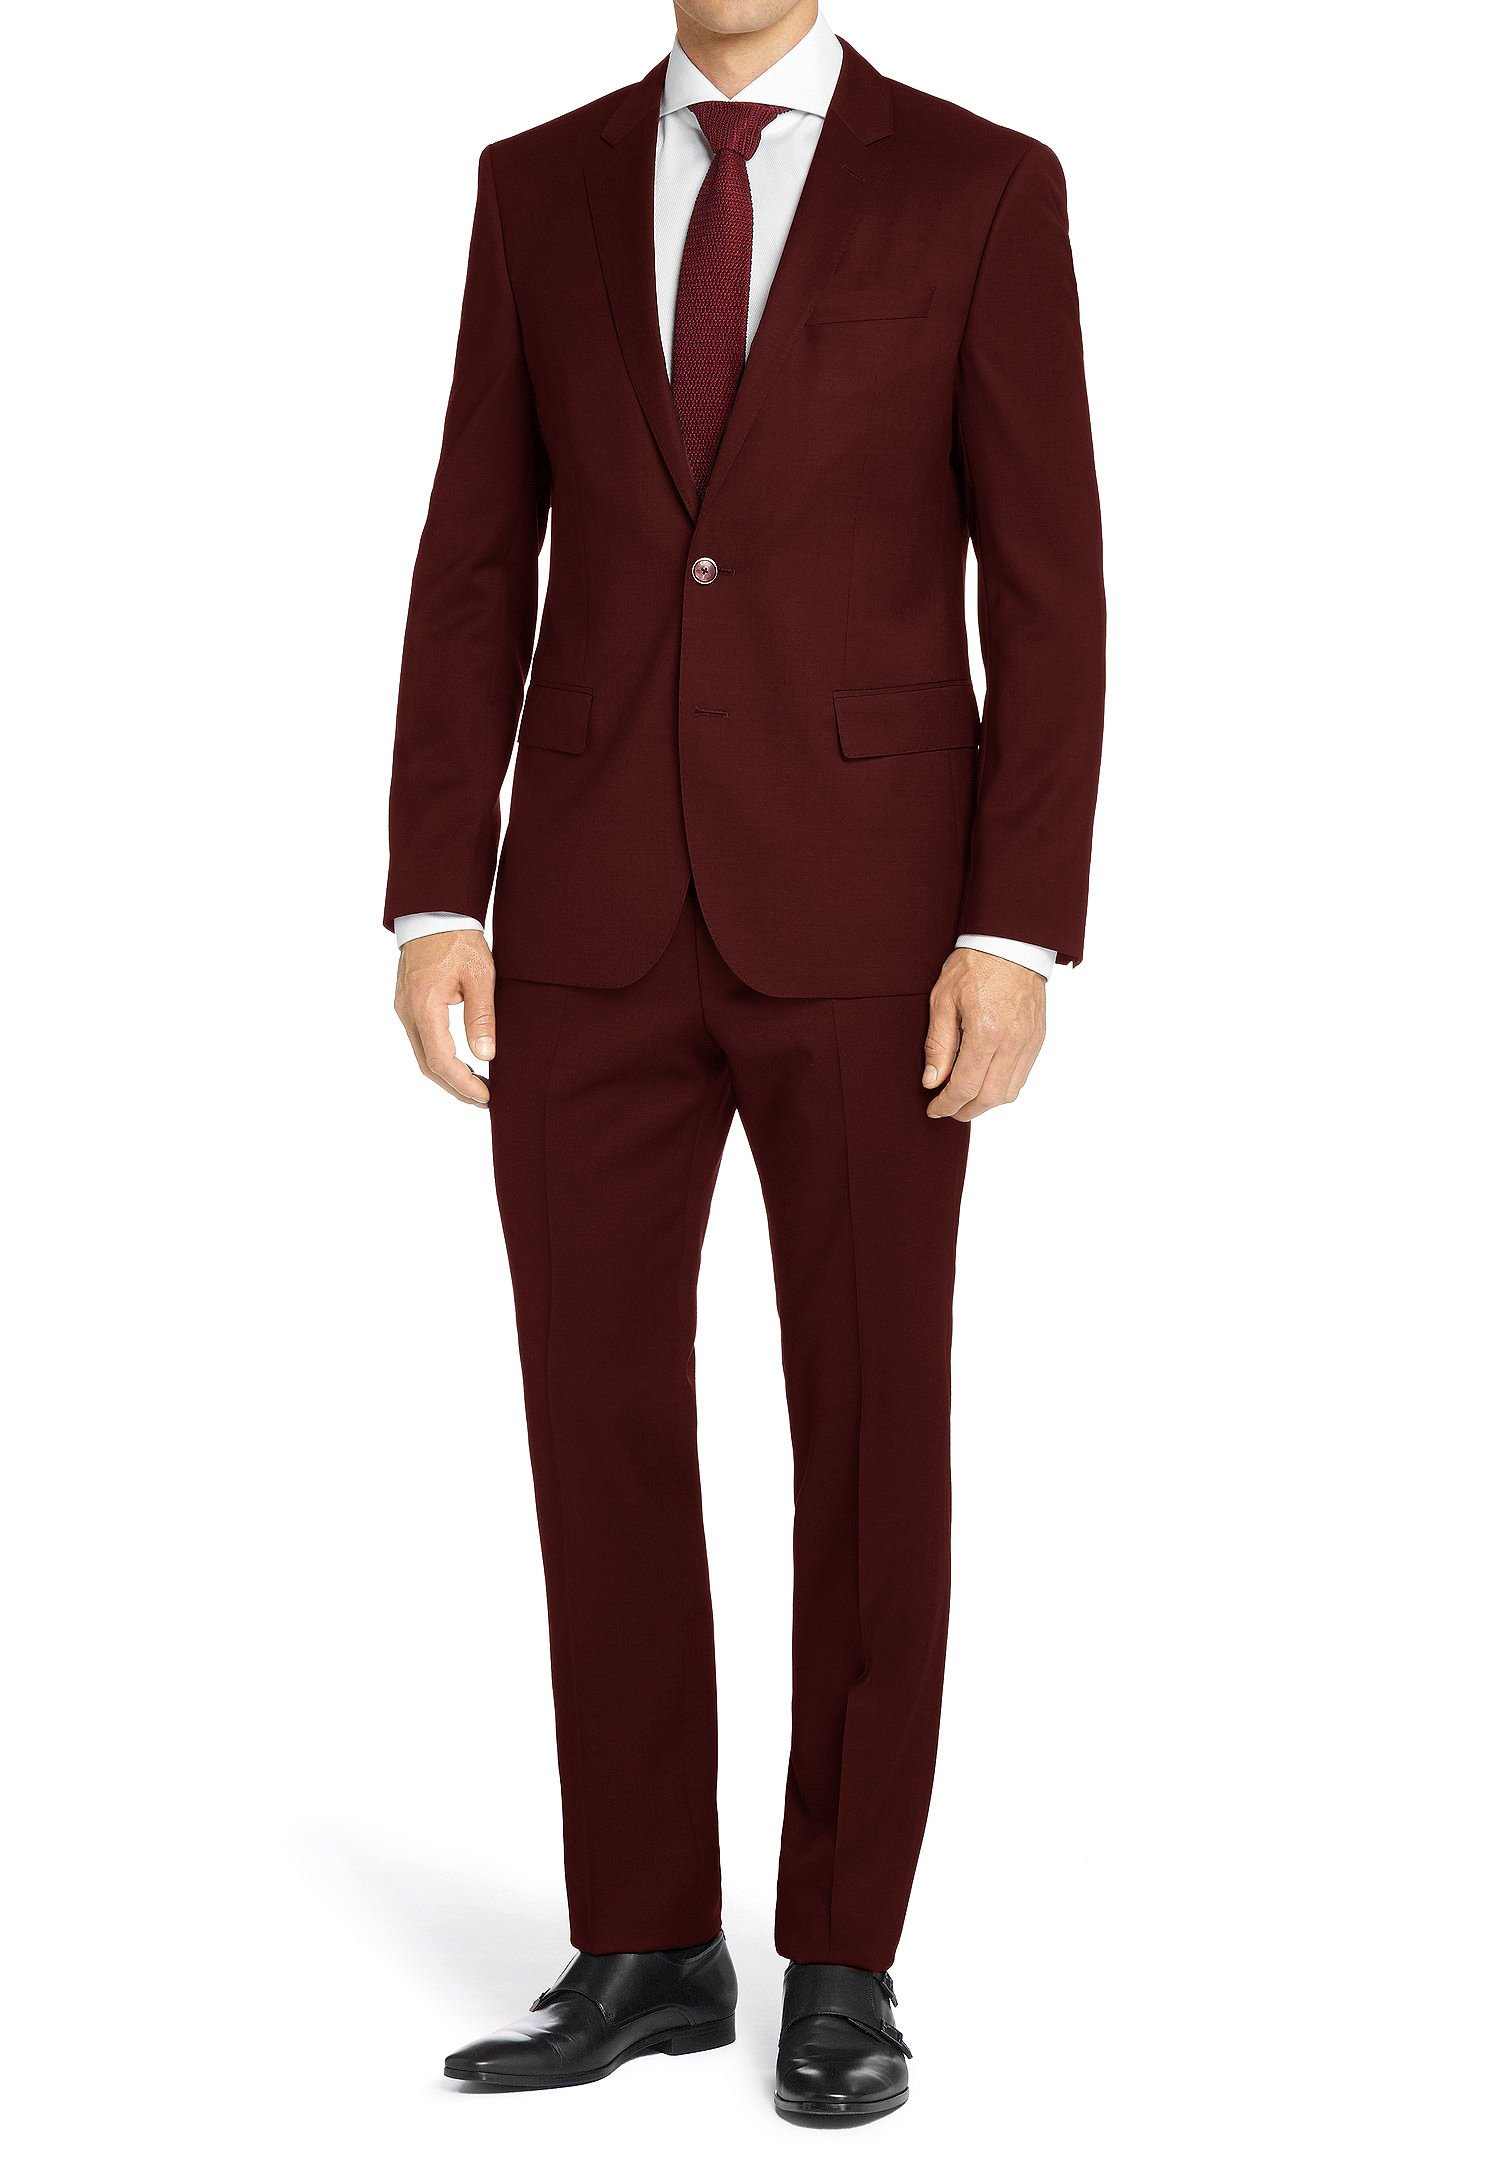 MDRN Uomo Mens Classic Fit 2 Piece Suit, Burgundy, Size 40Rx34W